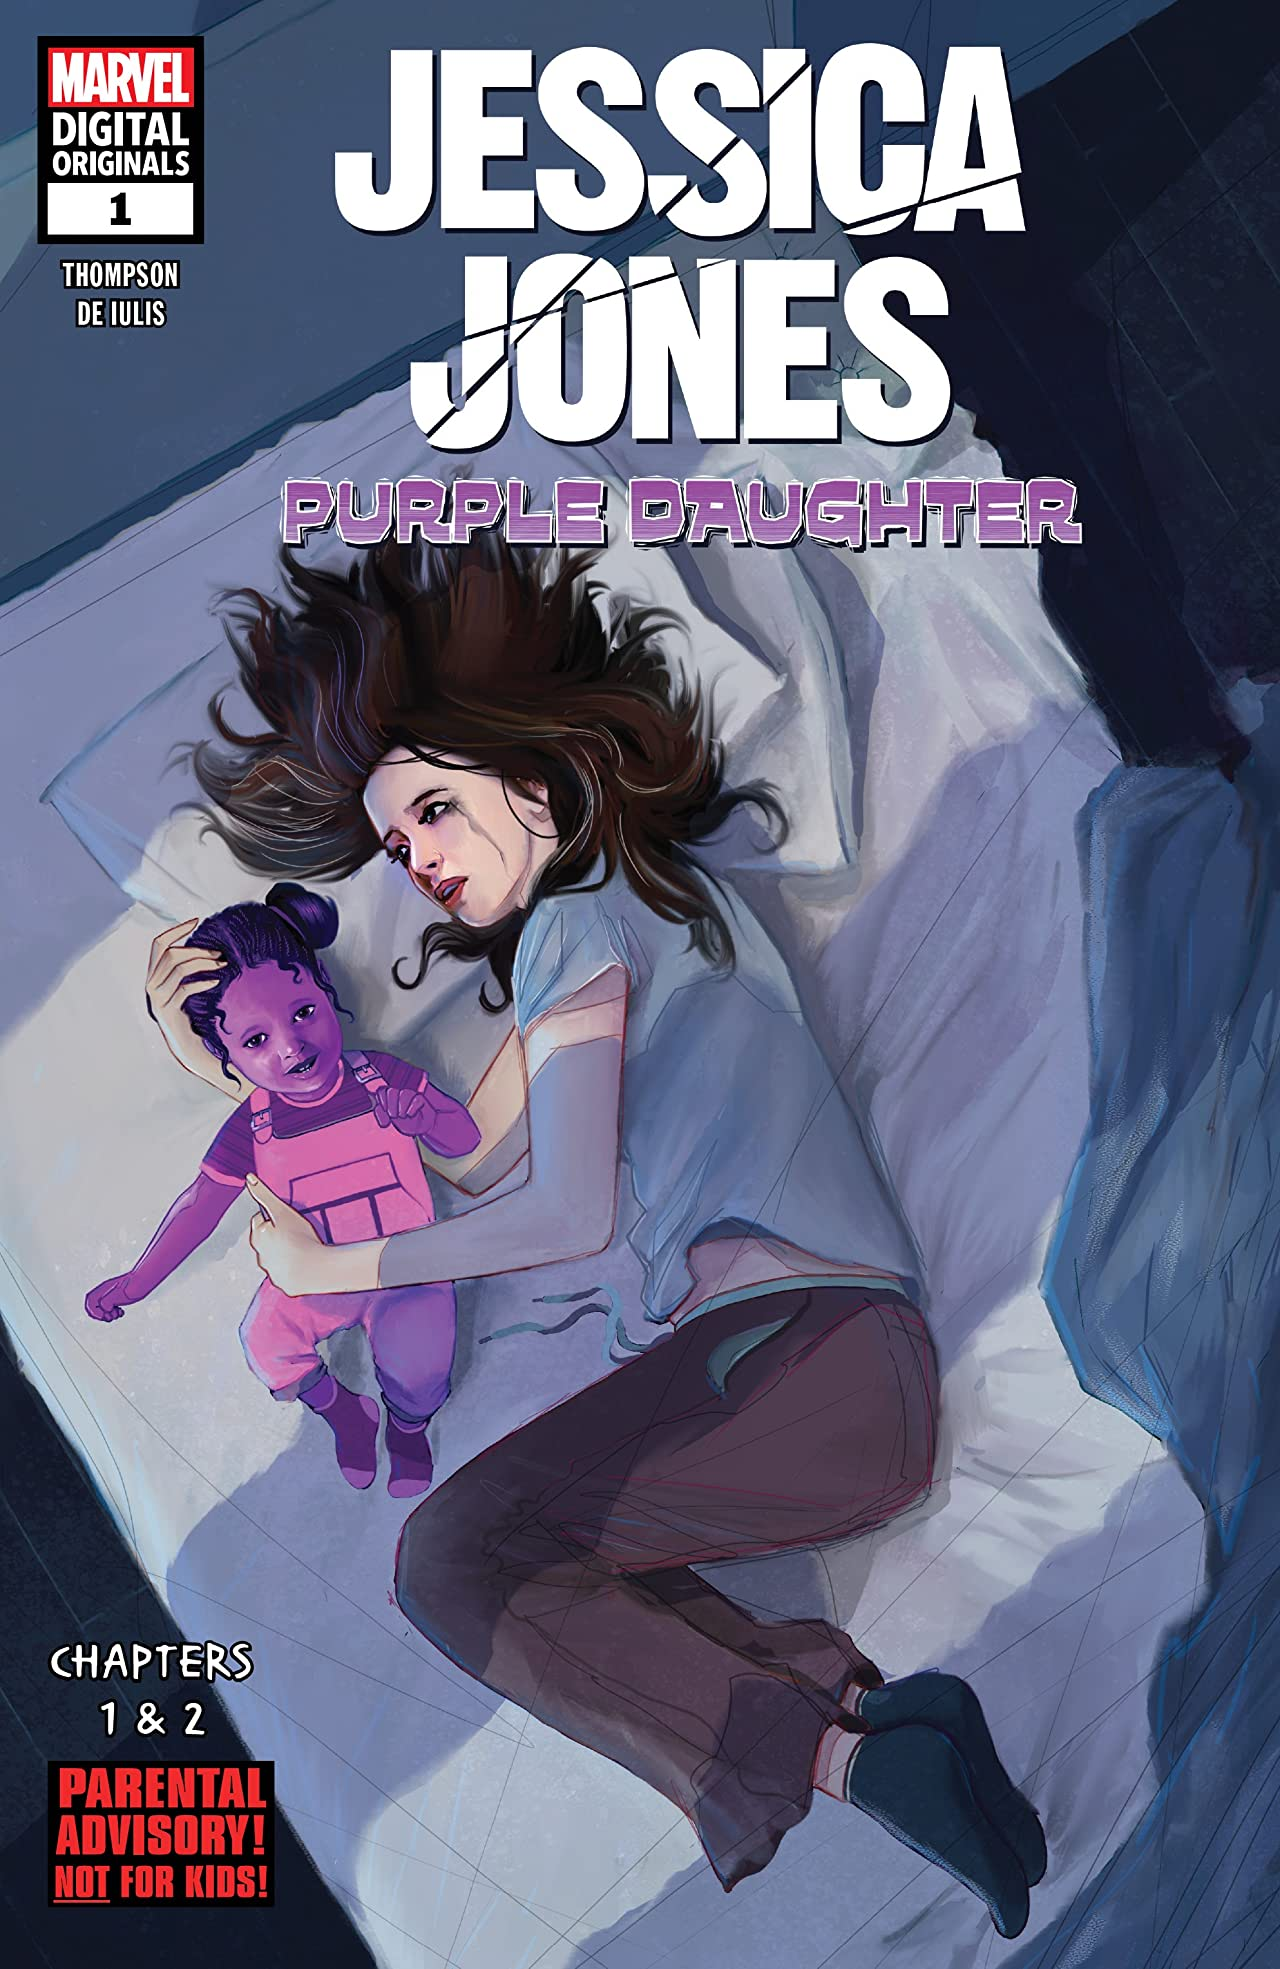 Jessica Jones: Purple Daughter - Marvel Digital Original (2019) #1 (of 3)